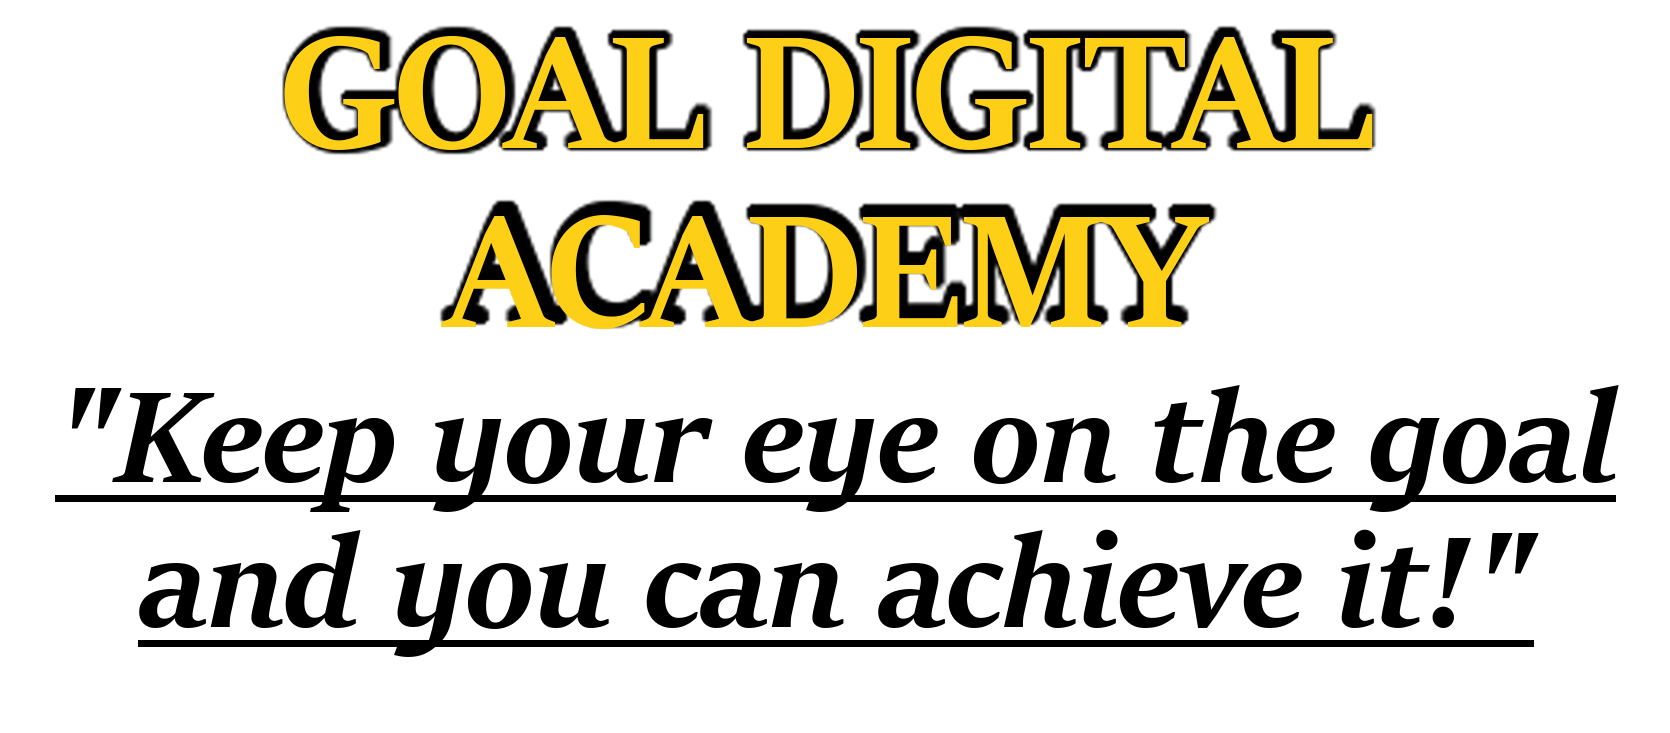 GOAL Digital Academy Helpdesk